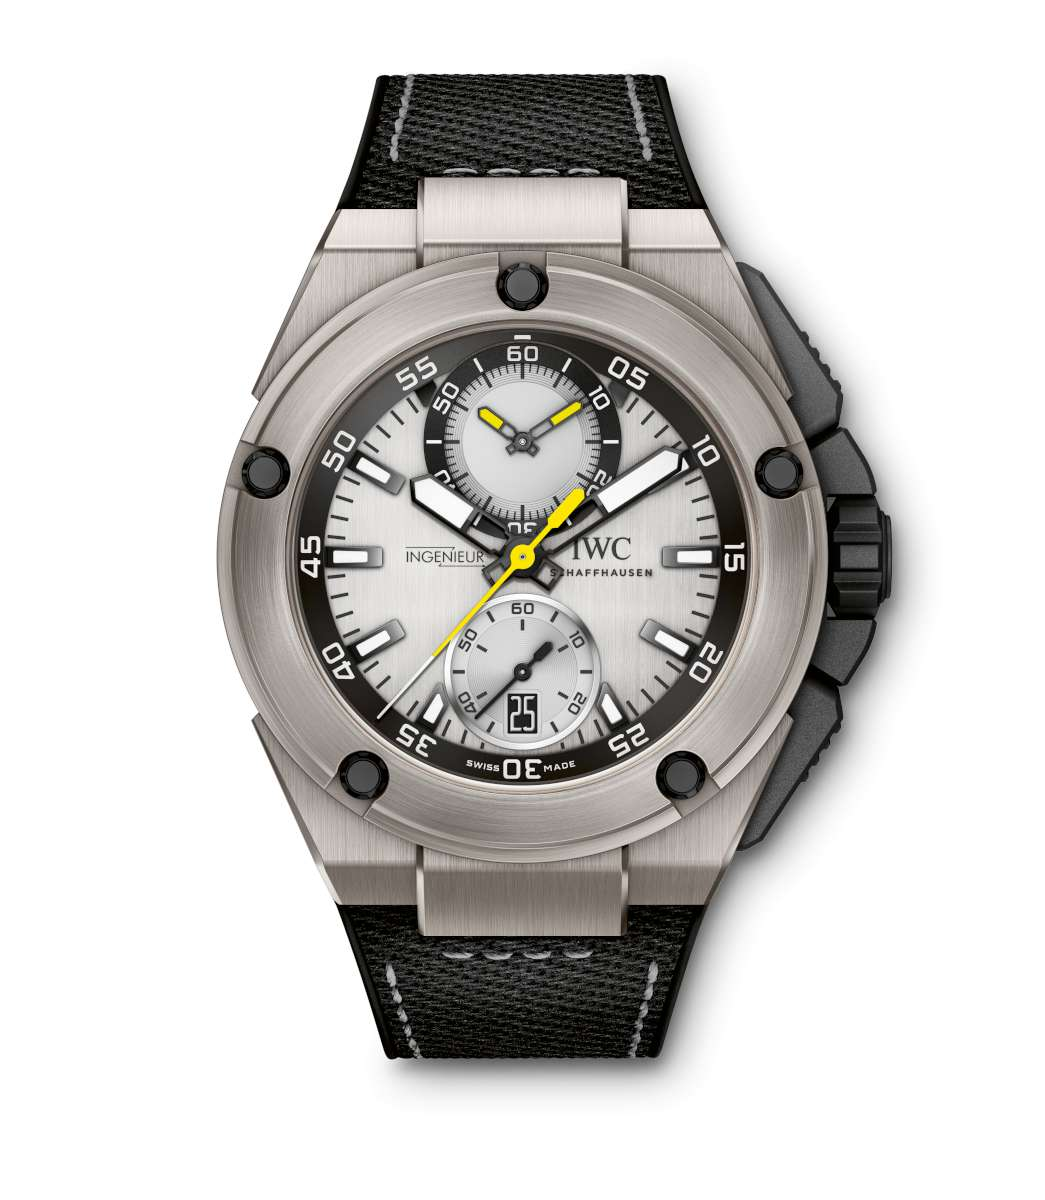 Nico Rosberg's Ingenieur watch, with silver-plated dial, titanium case and rubber strap